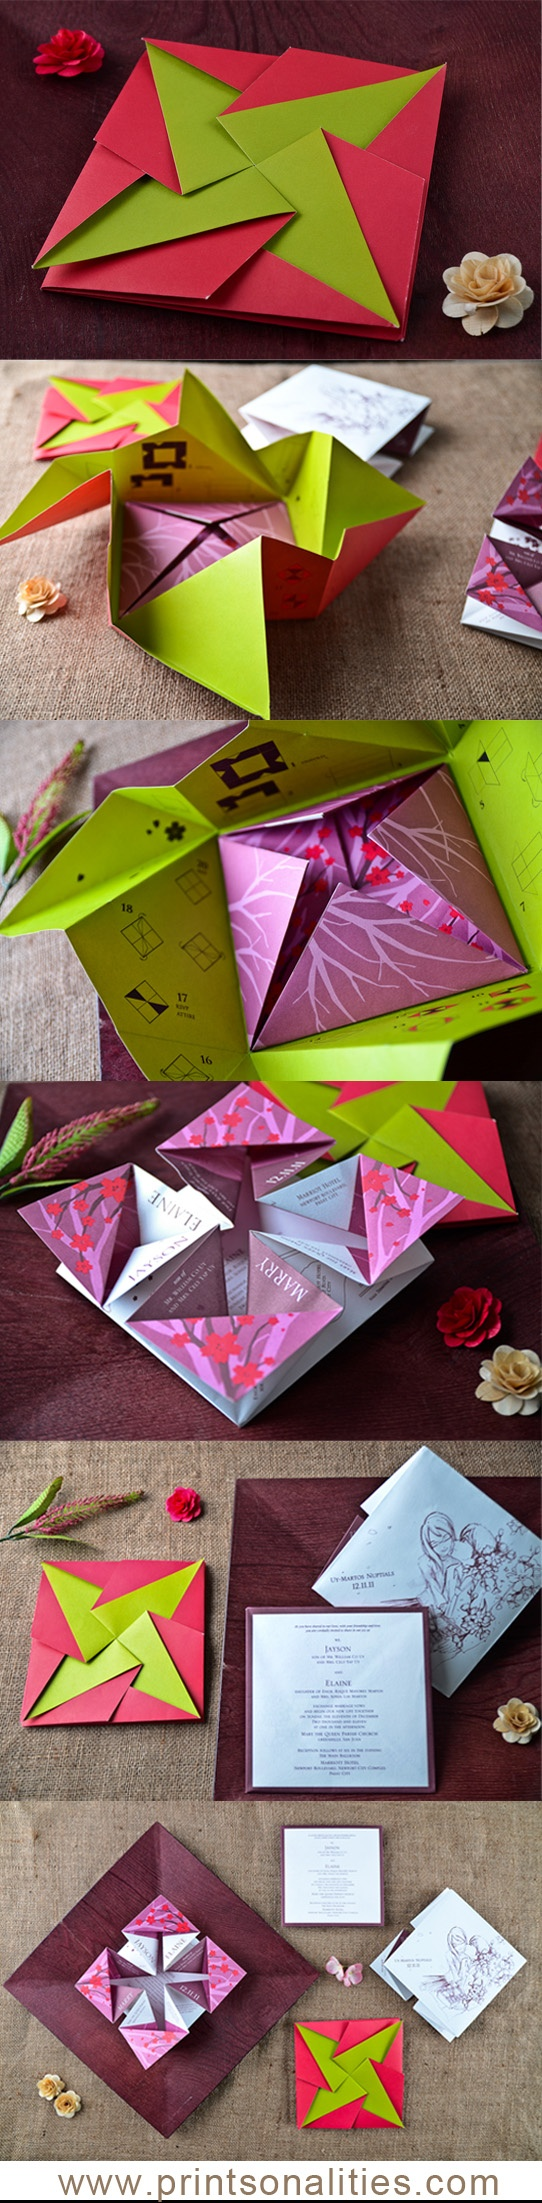 Fun origami wedding invitation by www.printsonalities.com, you have to unfold and refold to see the details of the wedding. :-)